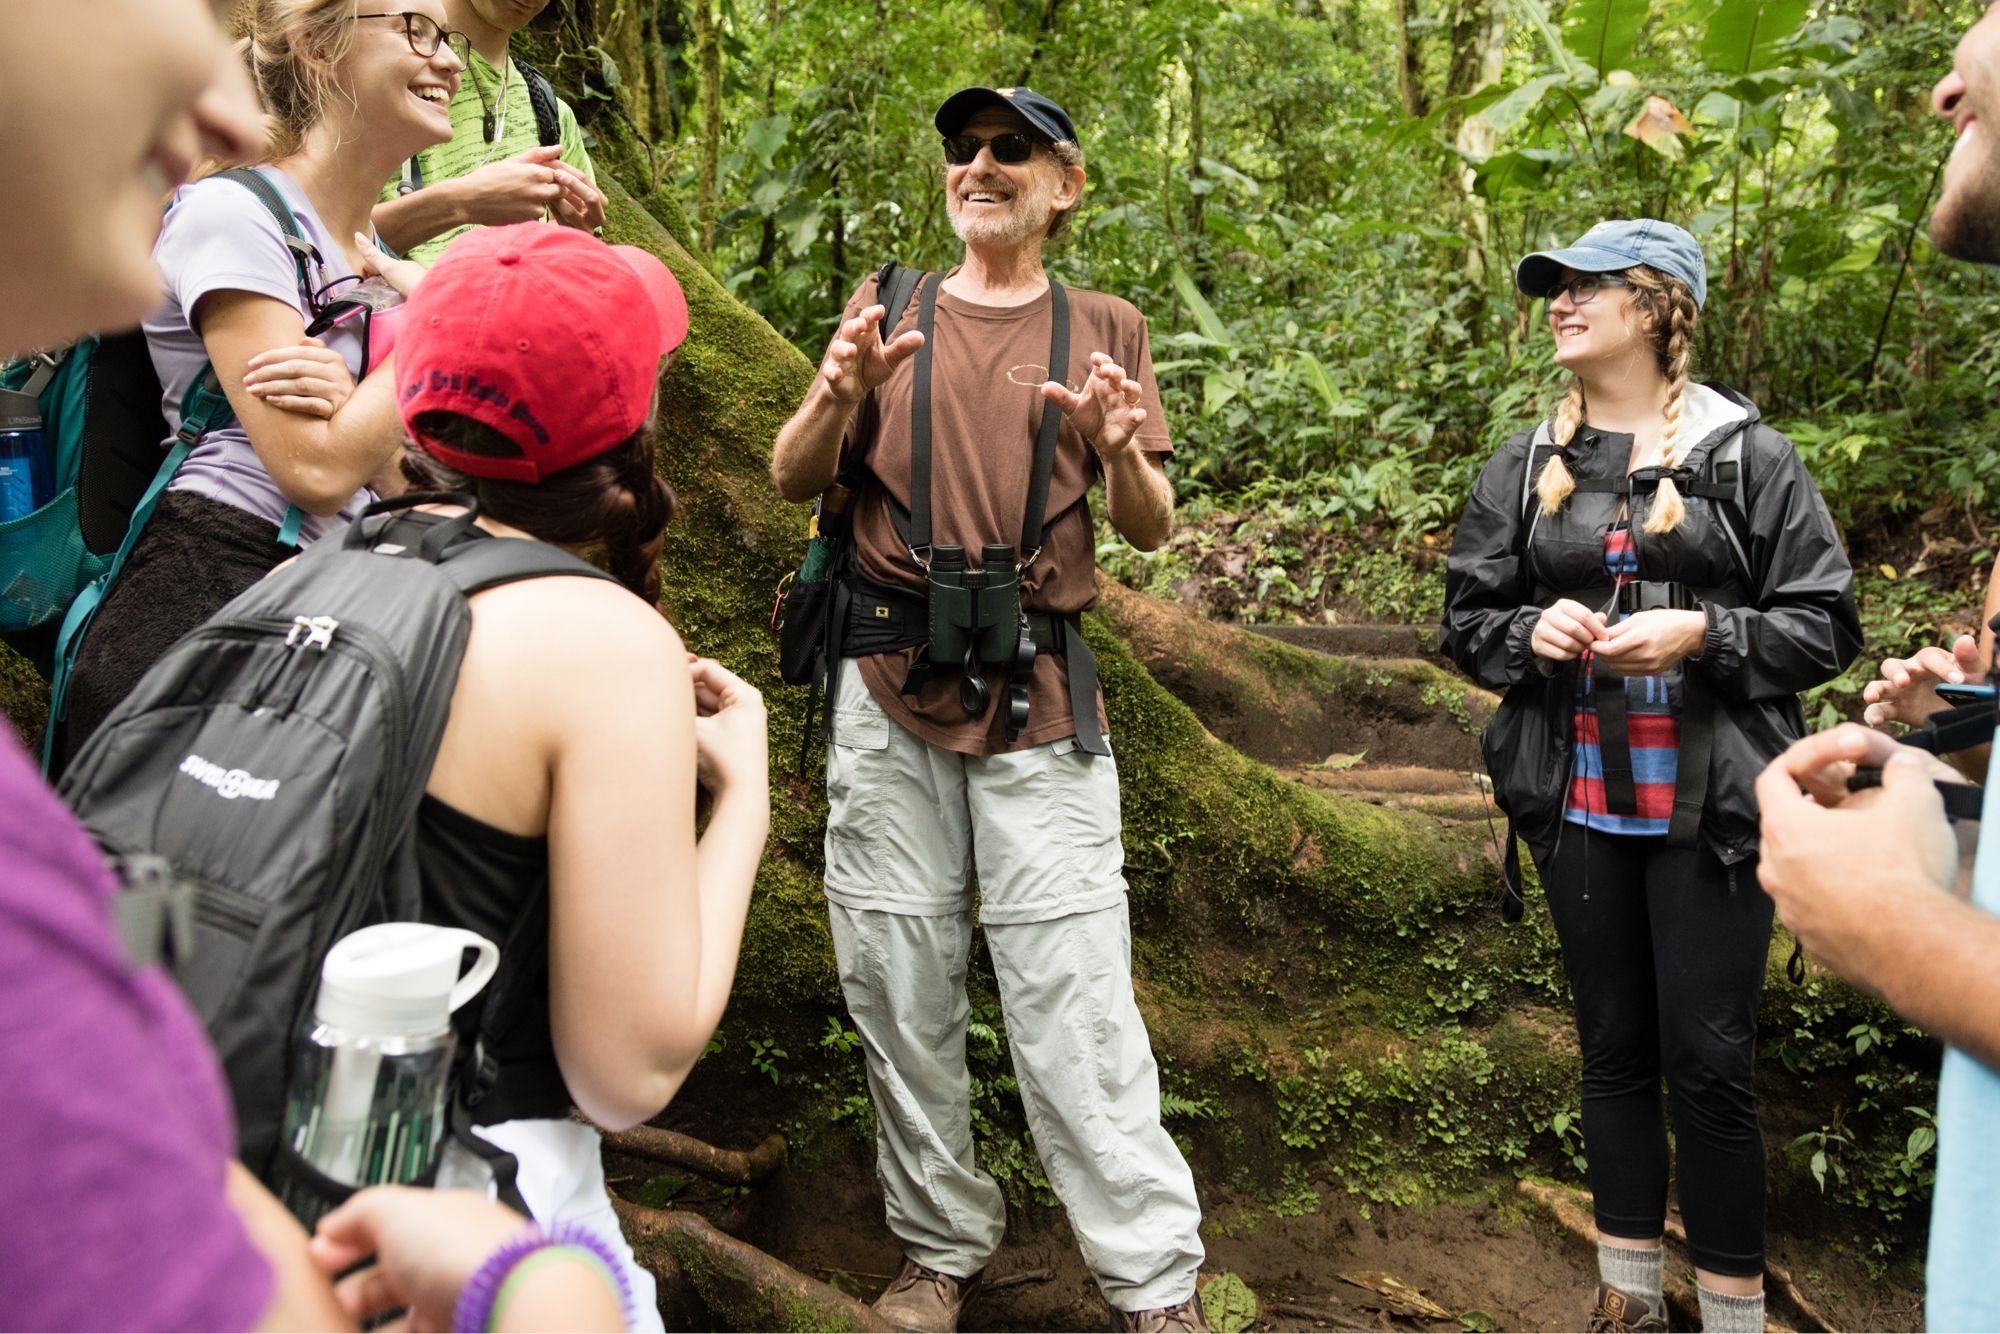 Ecology college professor addressing his class as they stand near a large tree in a Costa Rican rain forest.